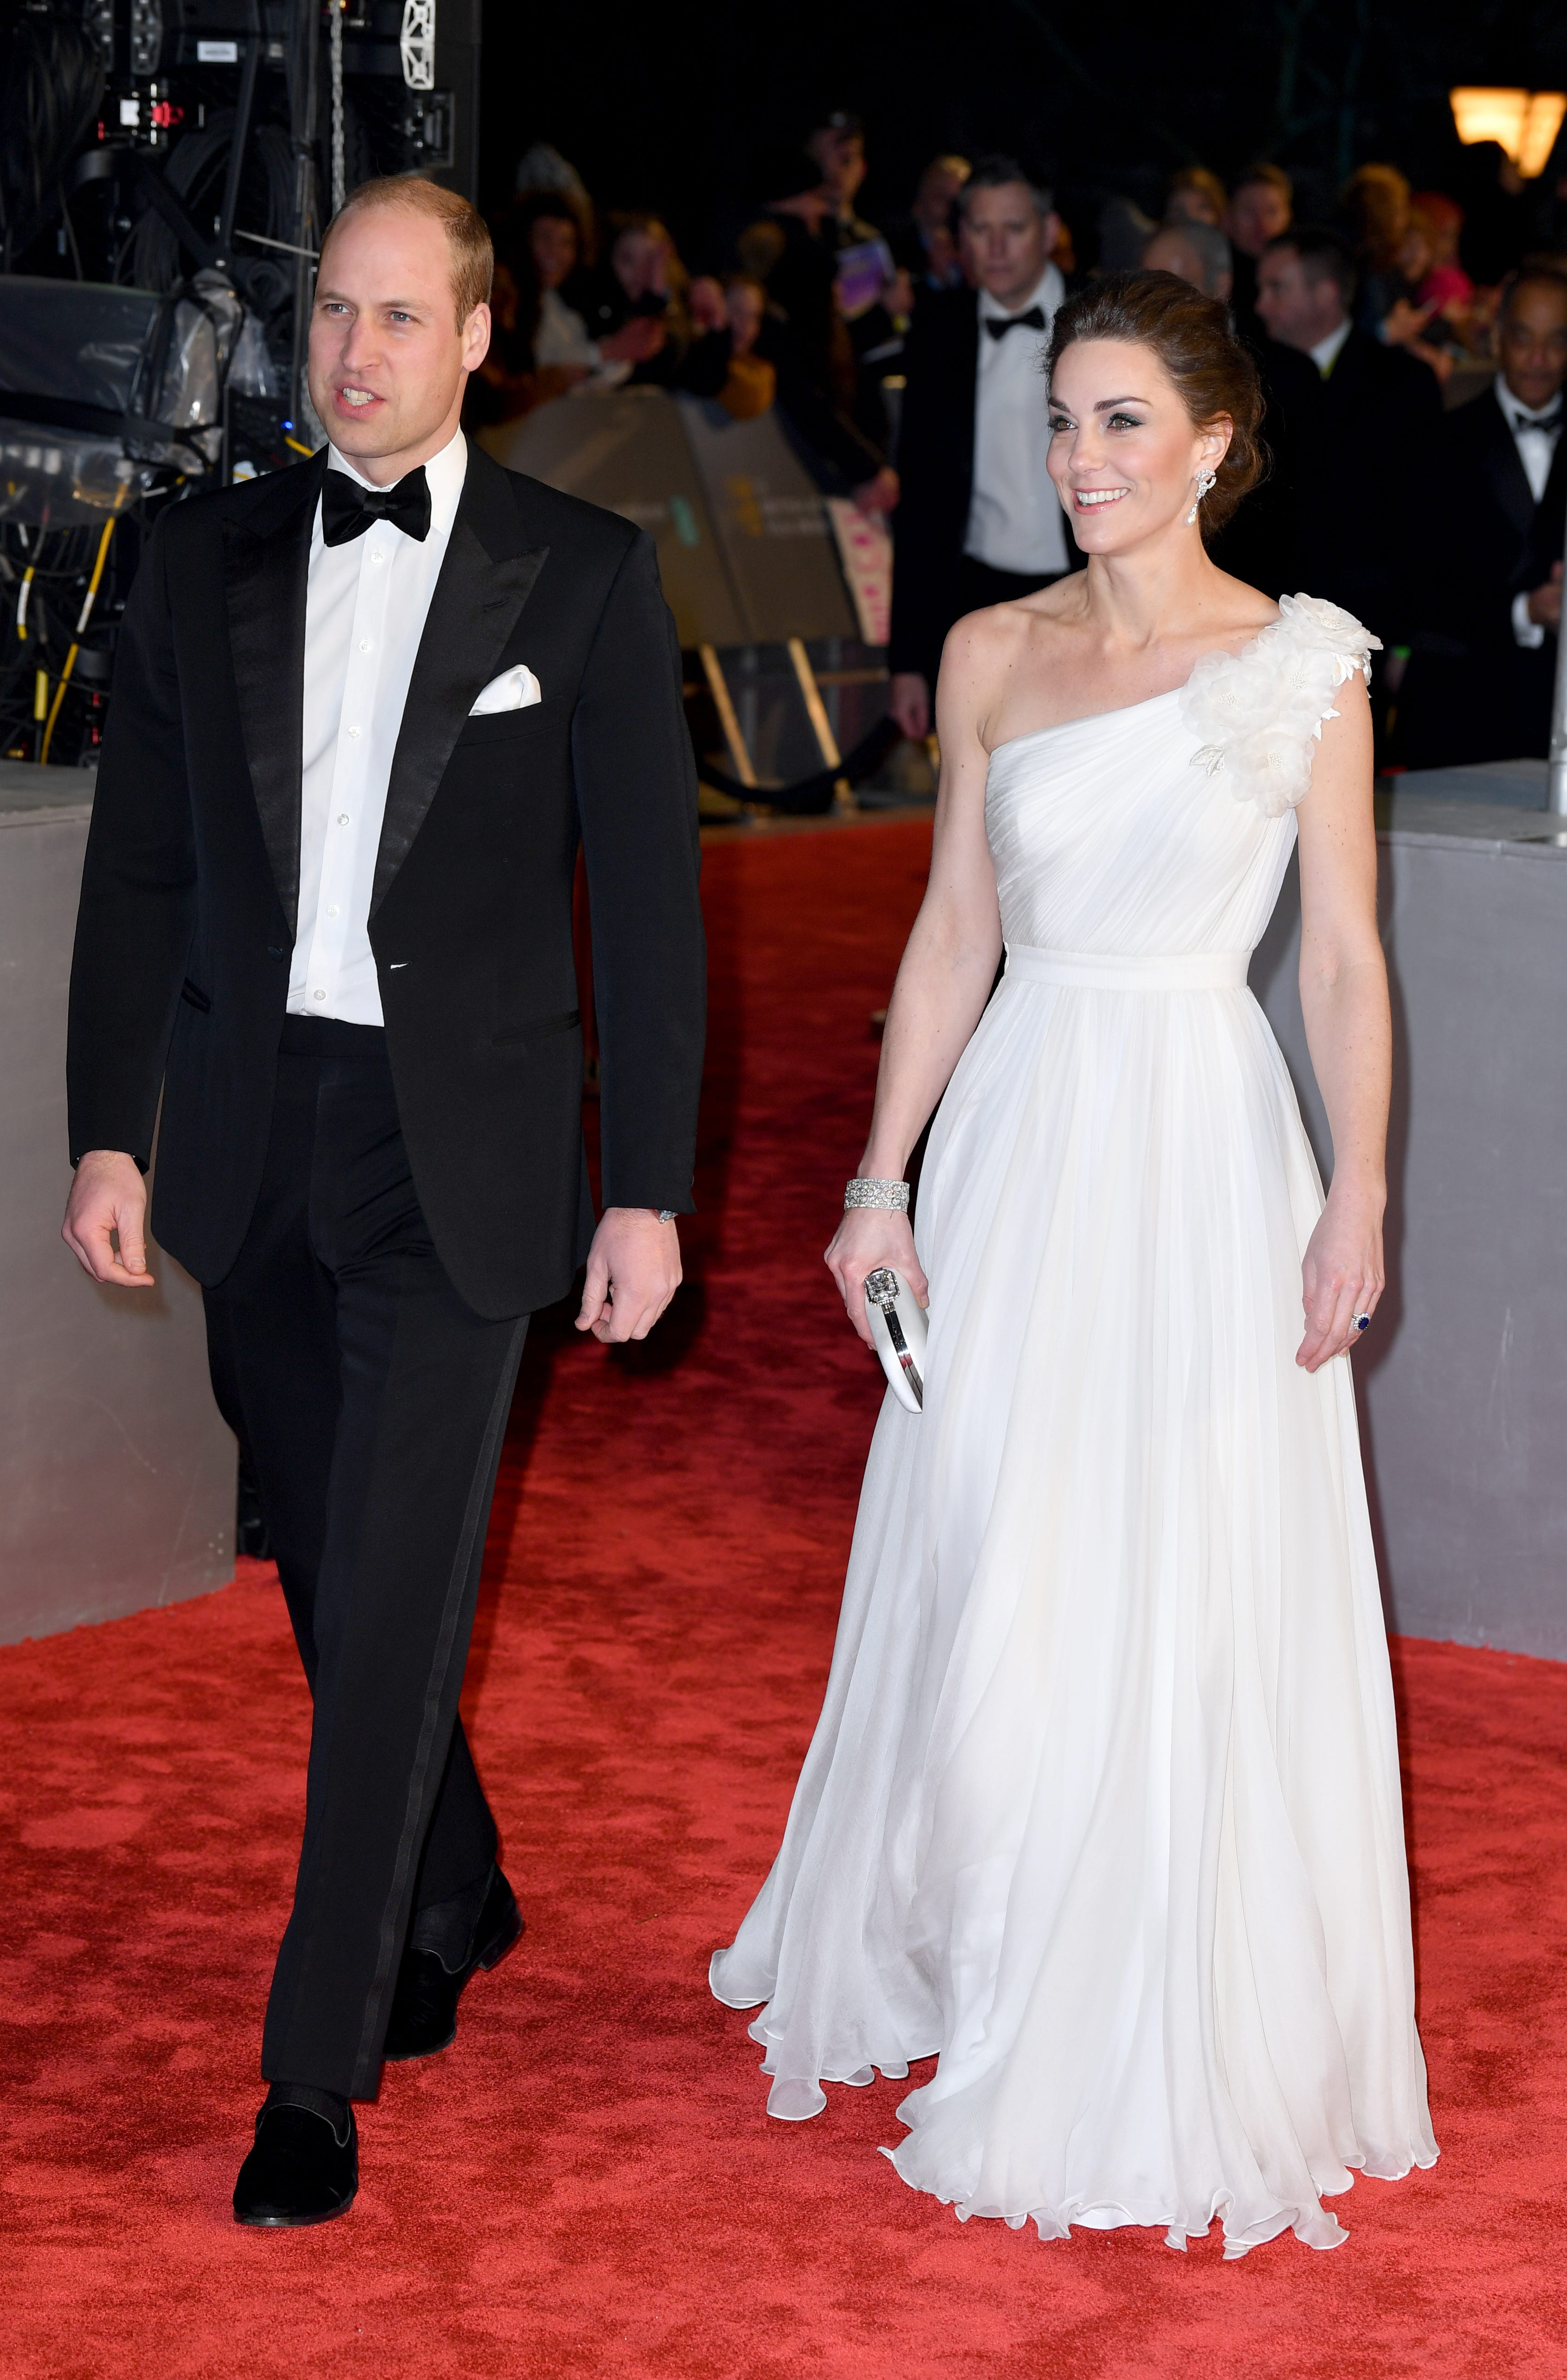 Duchess Kate dominated the BAFTA red carpet in a one-shouldered white gown.